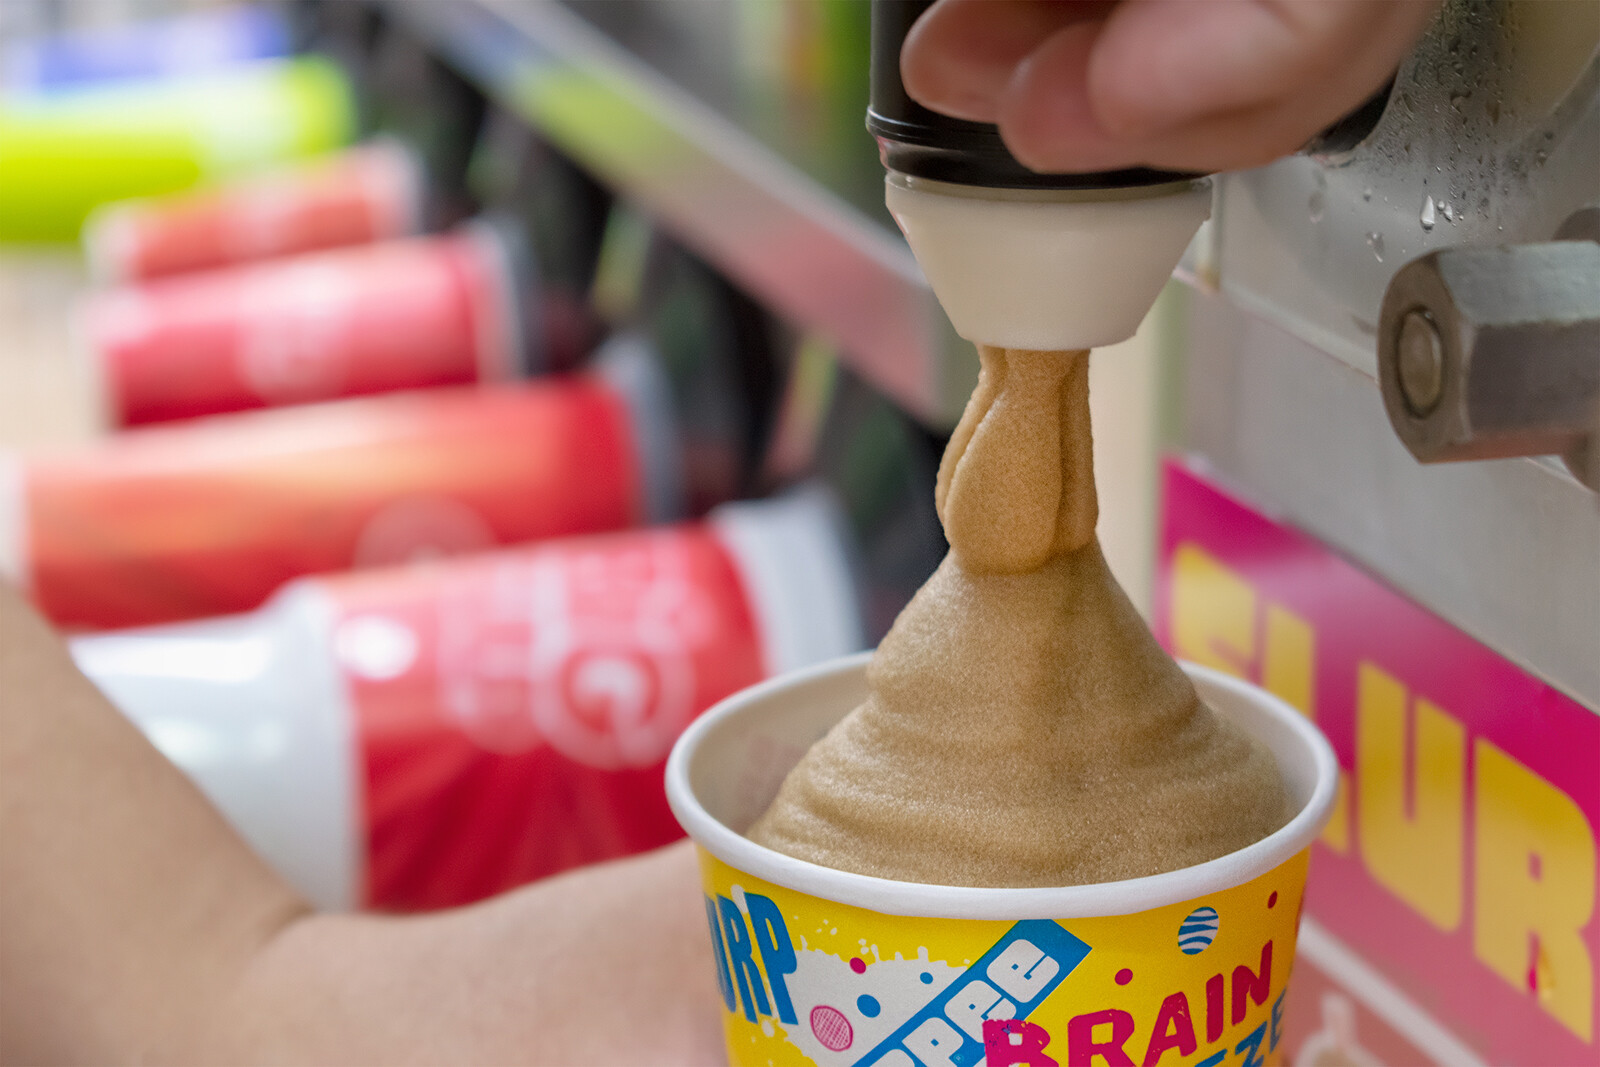 7-Eleven Day is canceled again. But you can still get a free Slurpee